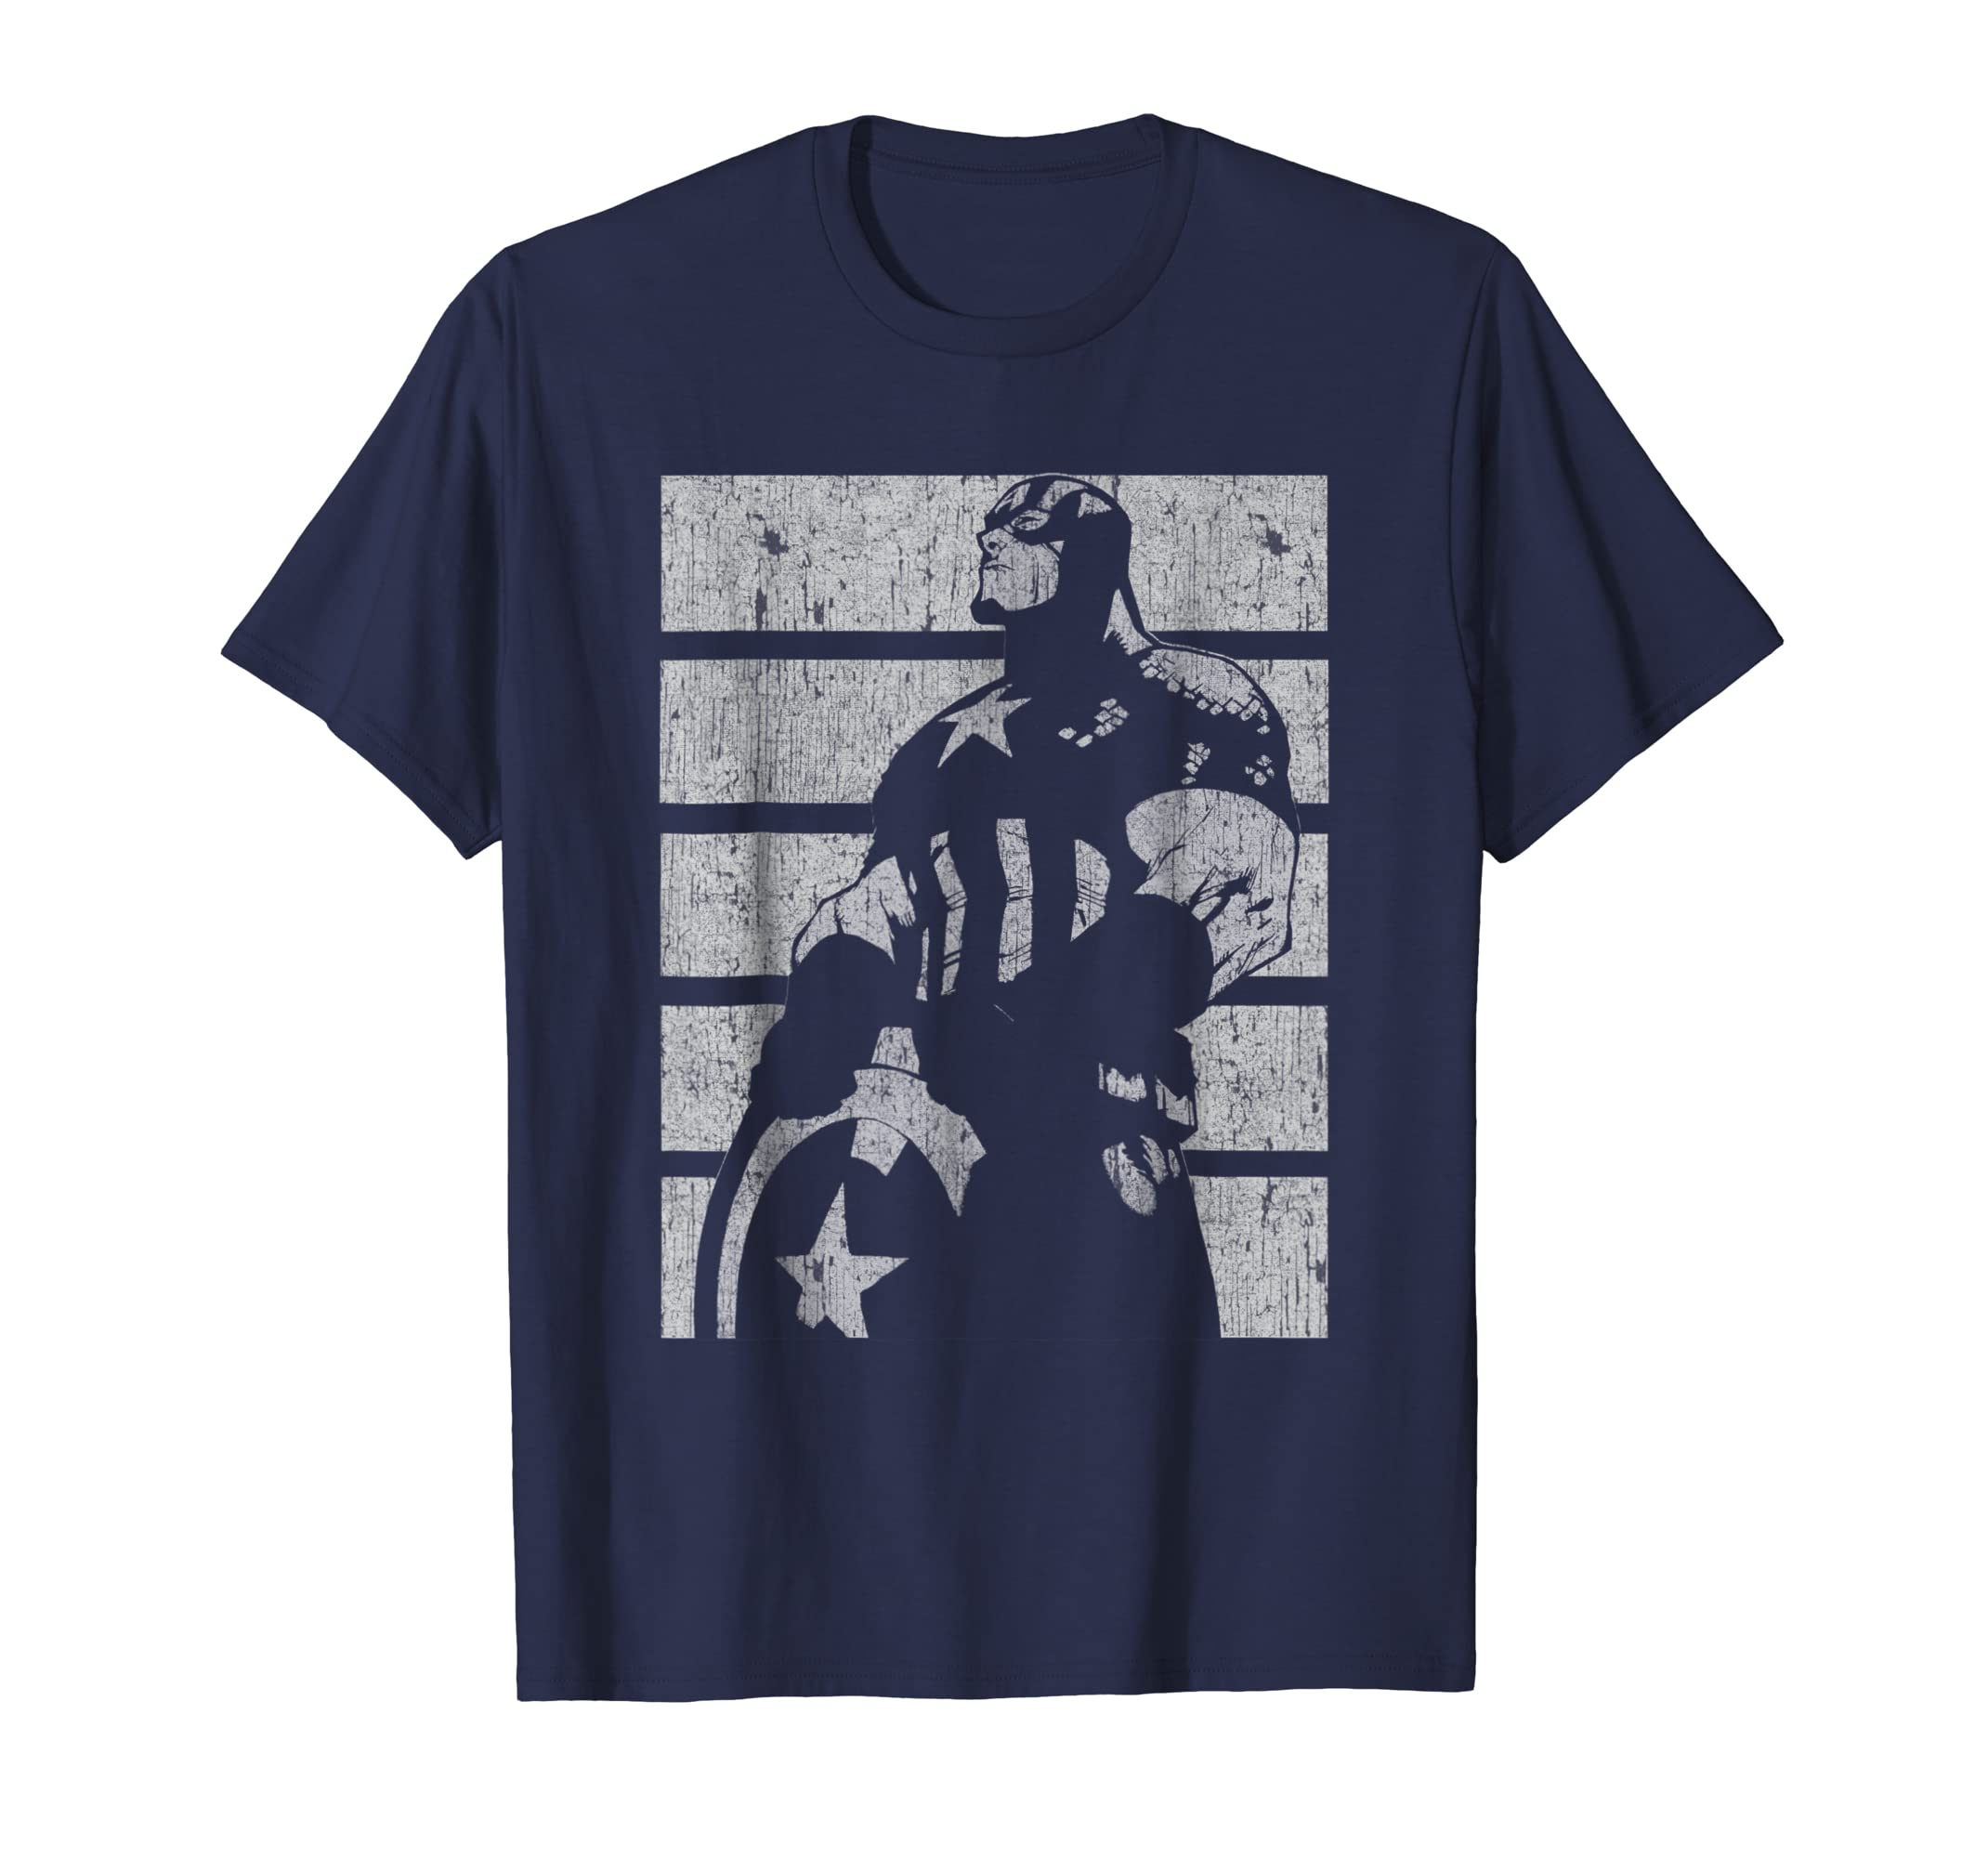 Captain America Avengers Profile Graphic T Shirt-azvn